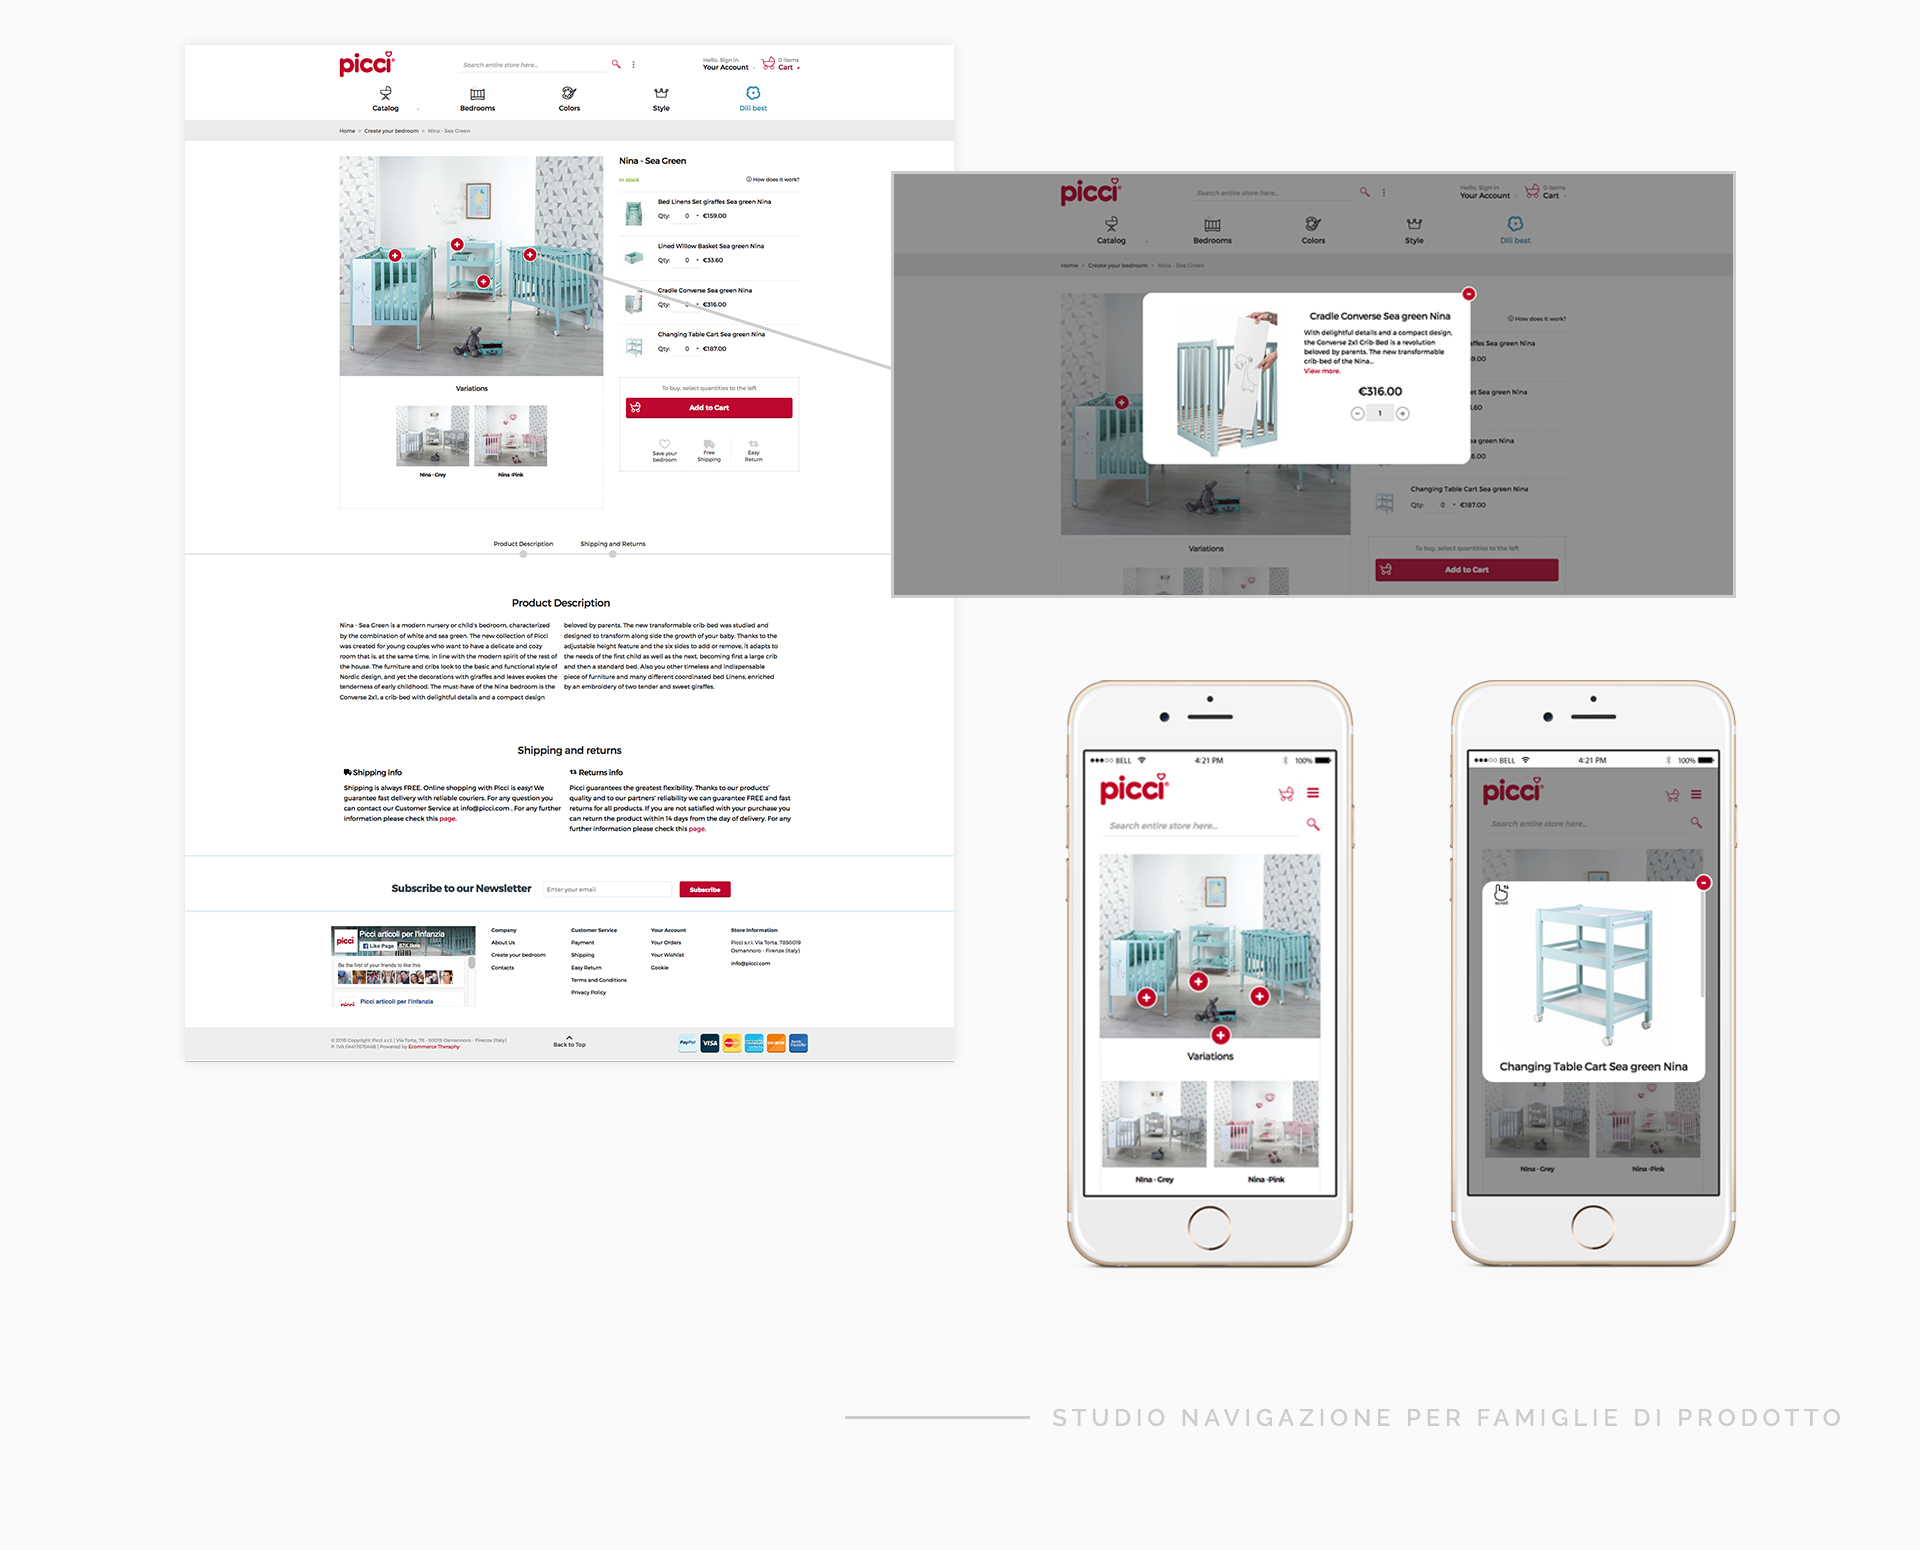 ux design picci by e-commerce therapy